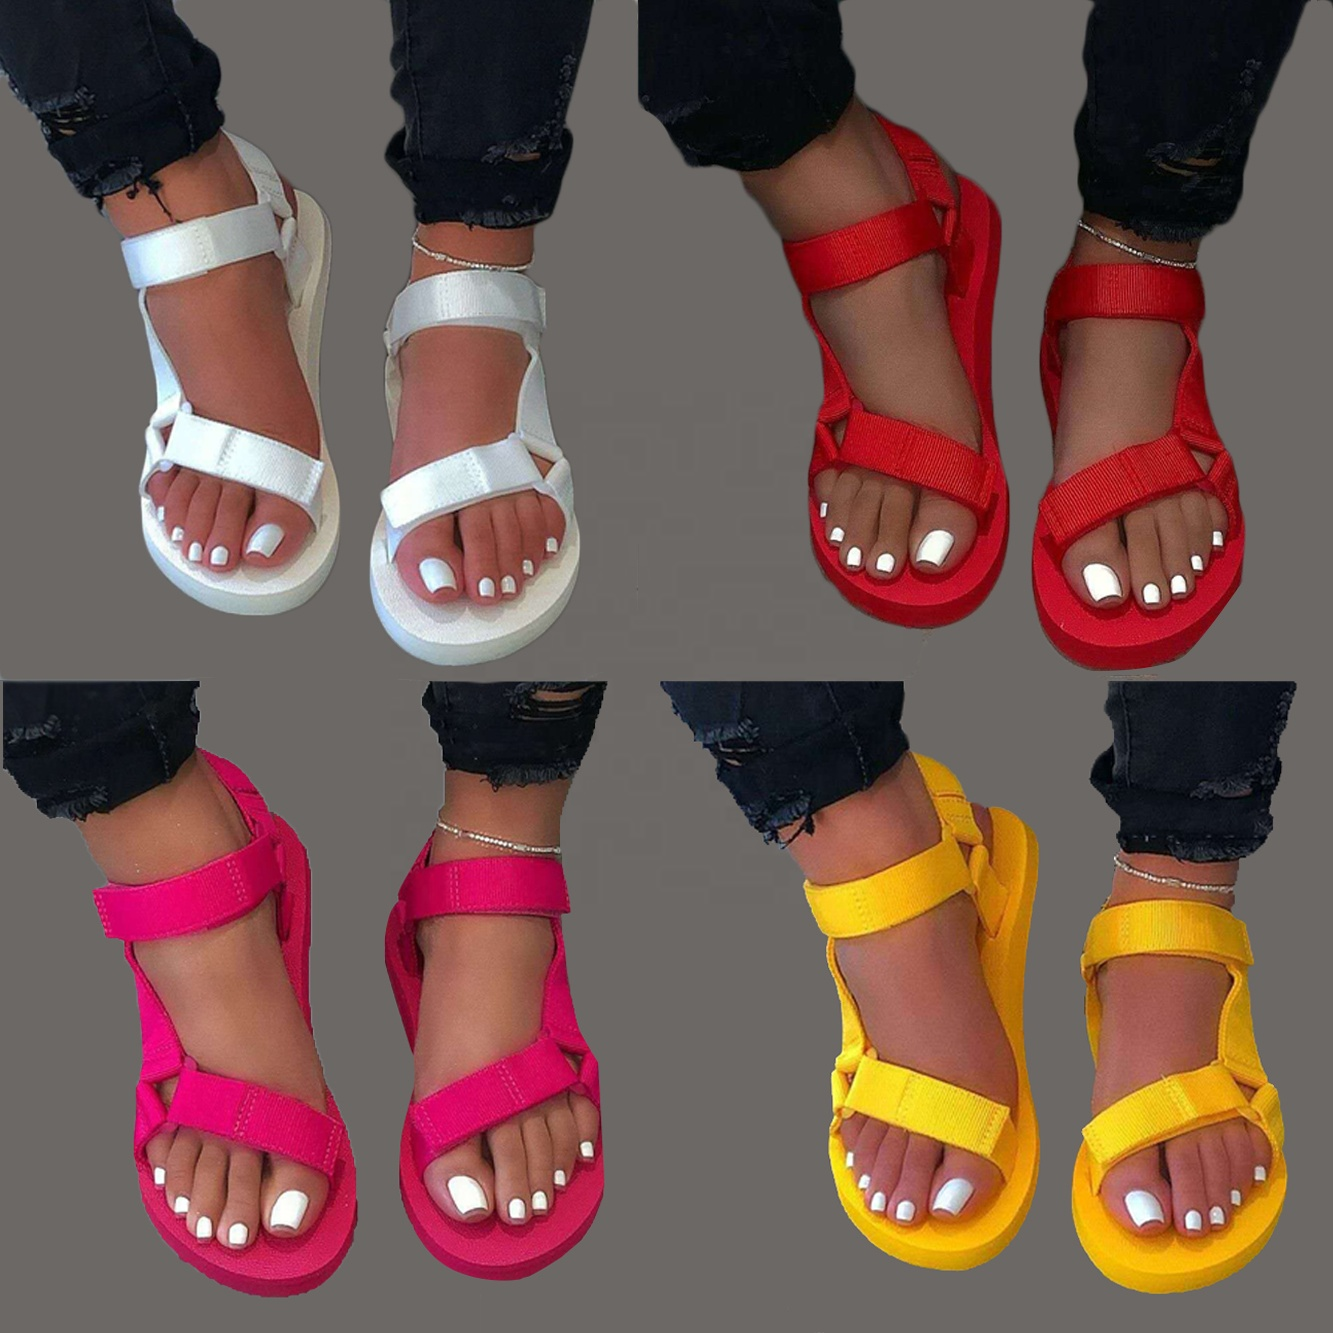 2020 <strong>Sandals</strong> For Women New Release Fashion Casual Shoes Women Ladies Shoes Slides